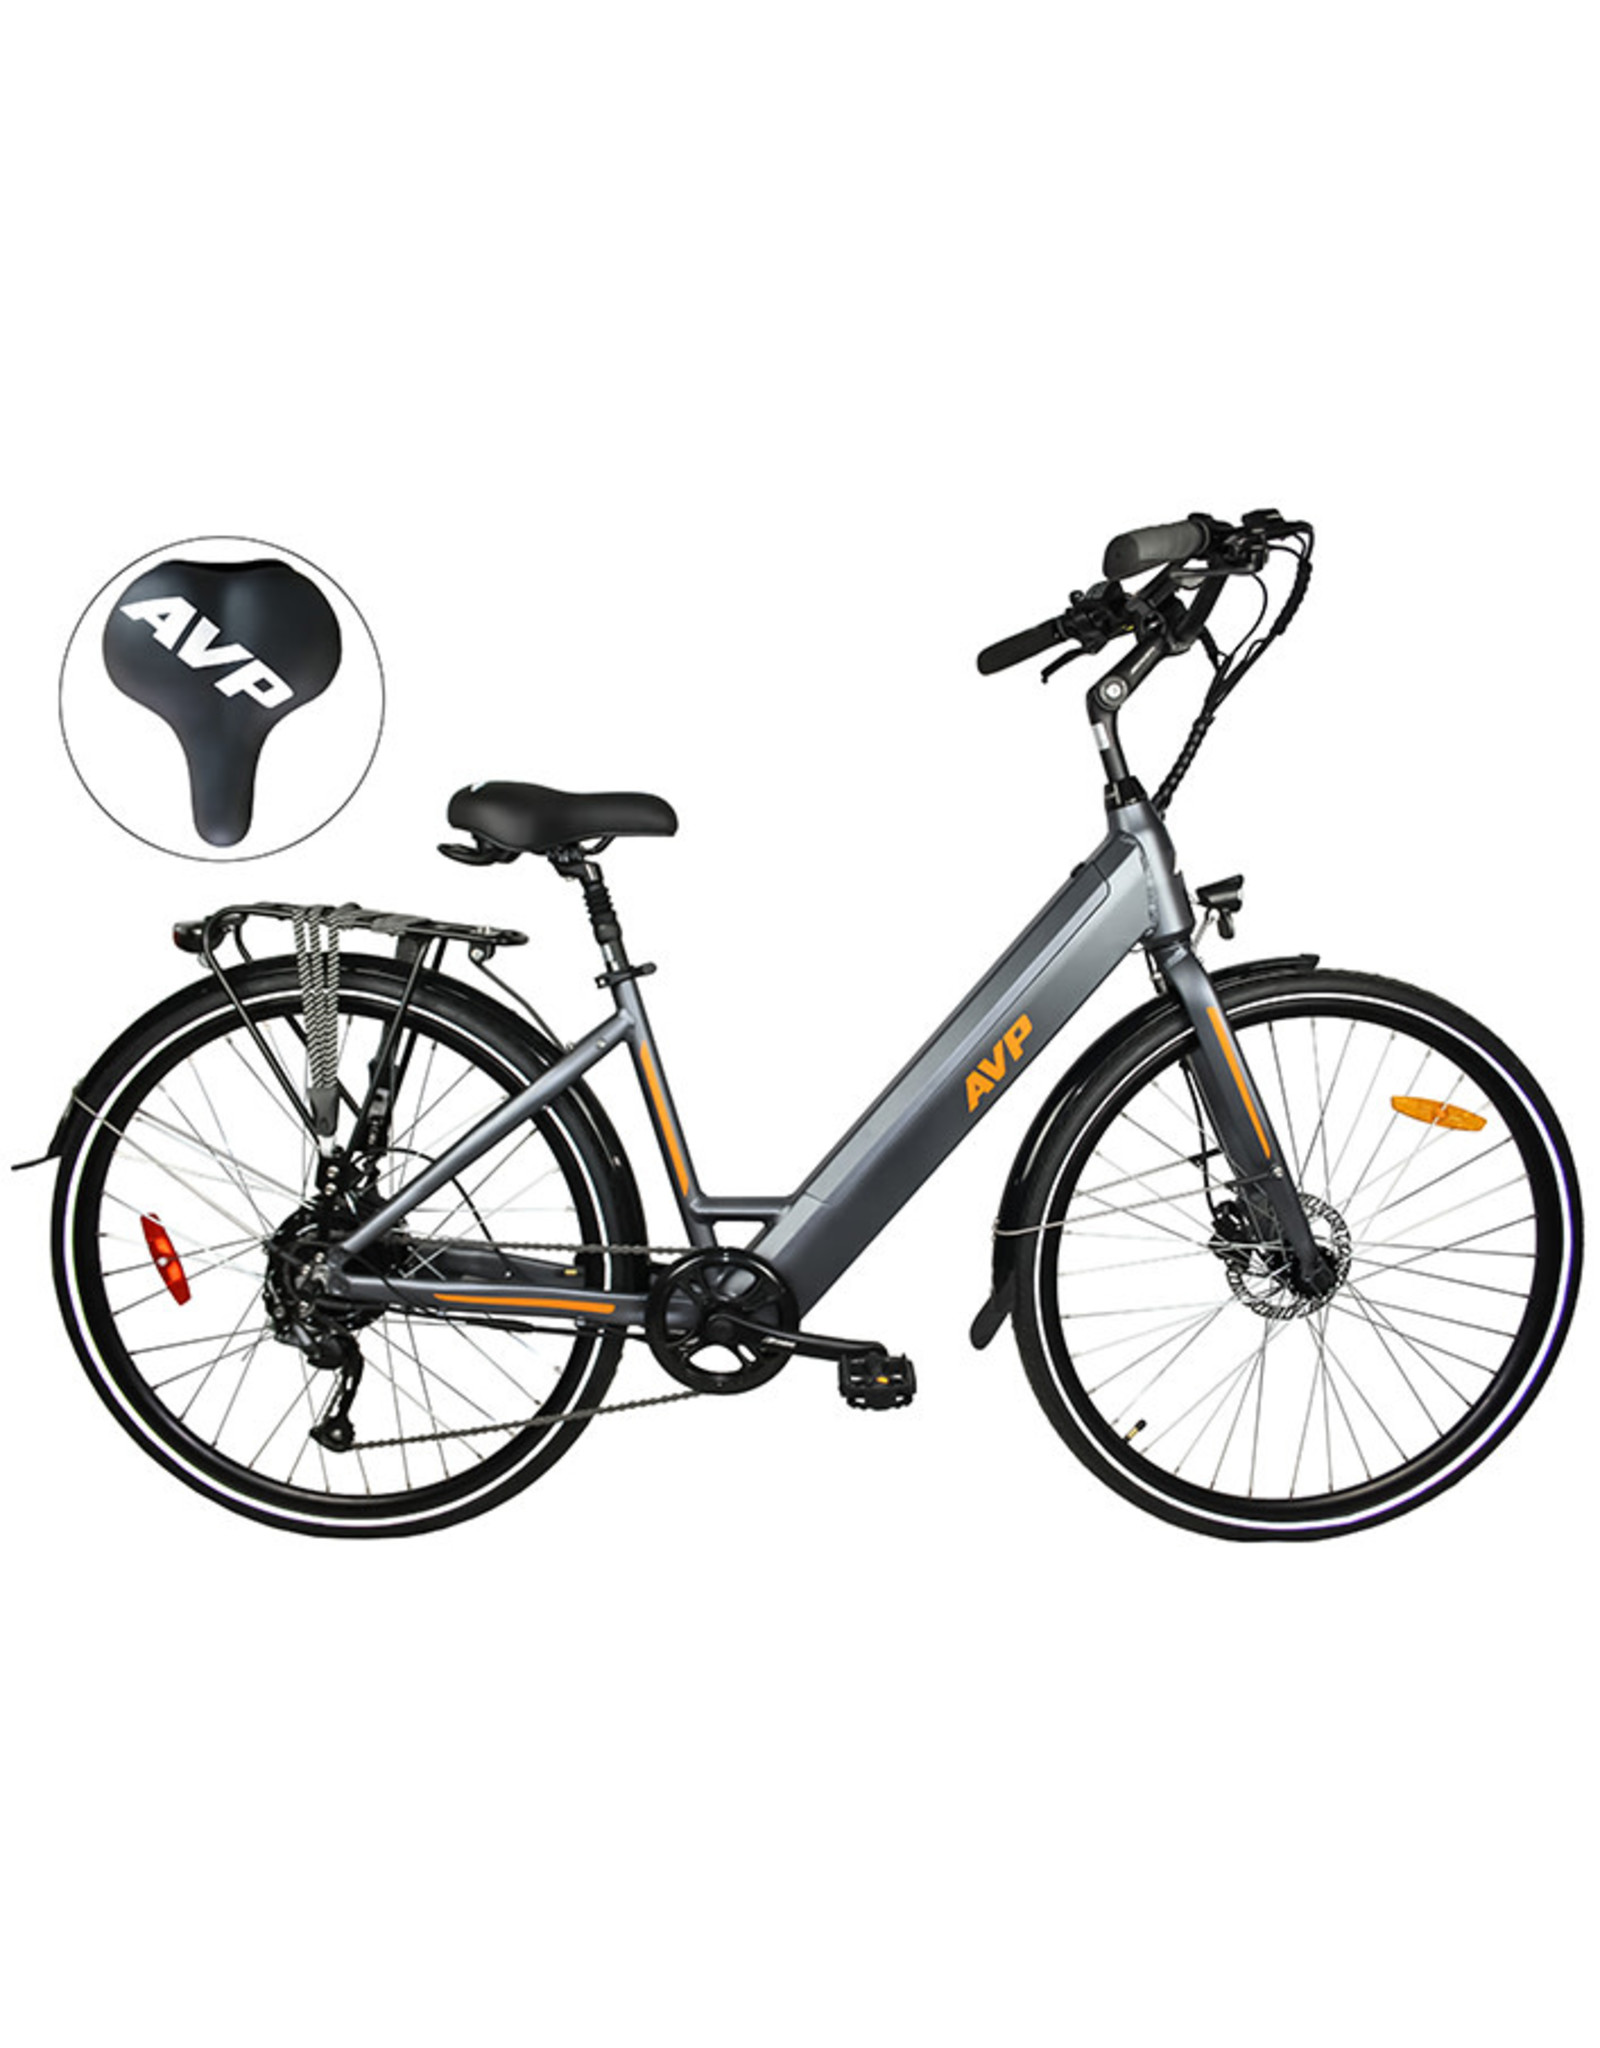 AVP AVP E- LOW STEP CHARCOAL MA/ORANGE MAT VÉLO ÉLECTRIQUE